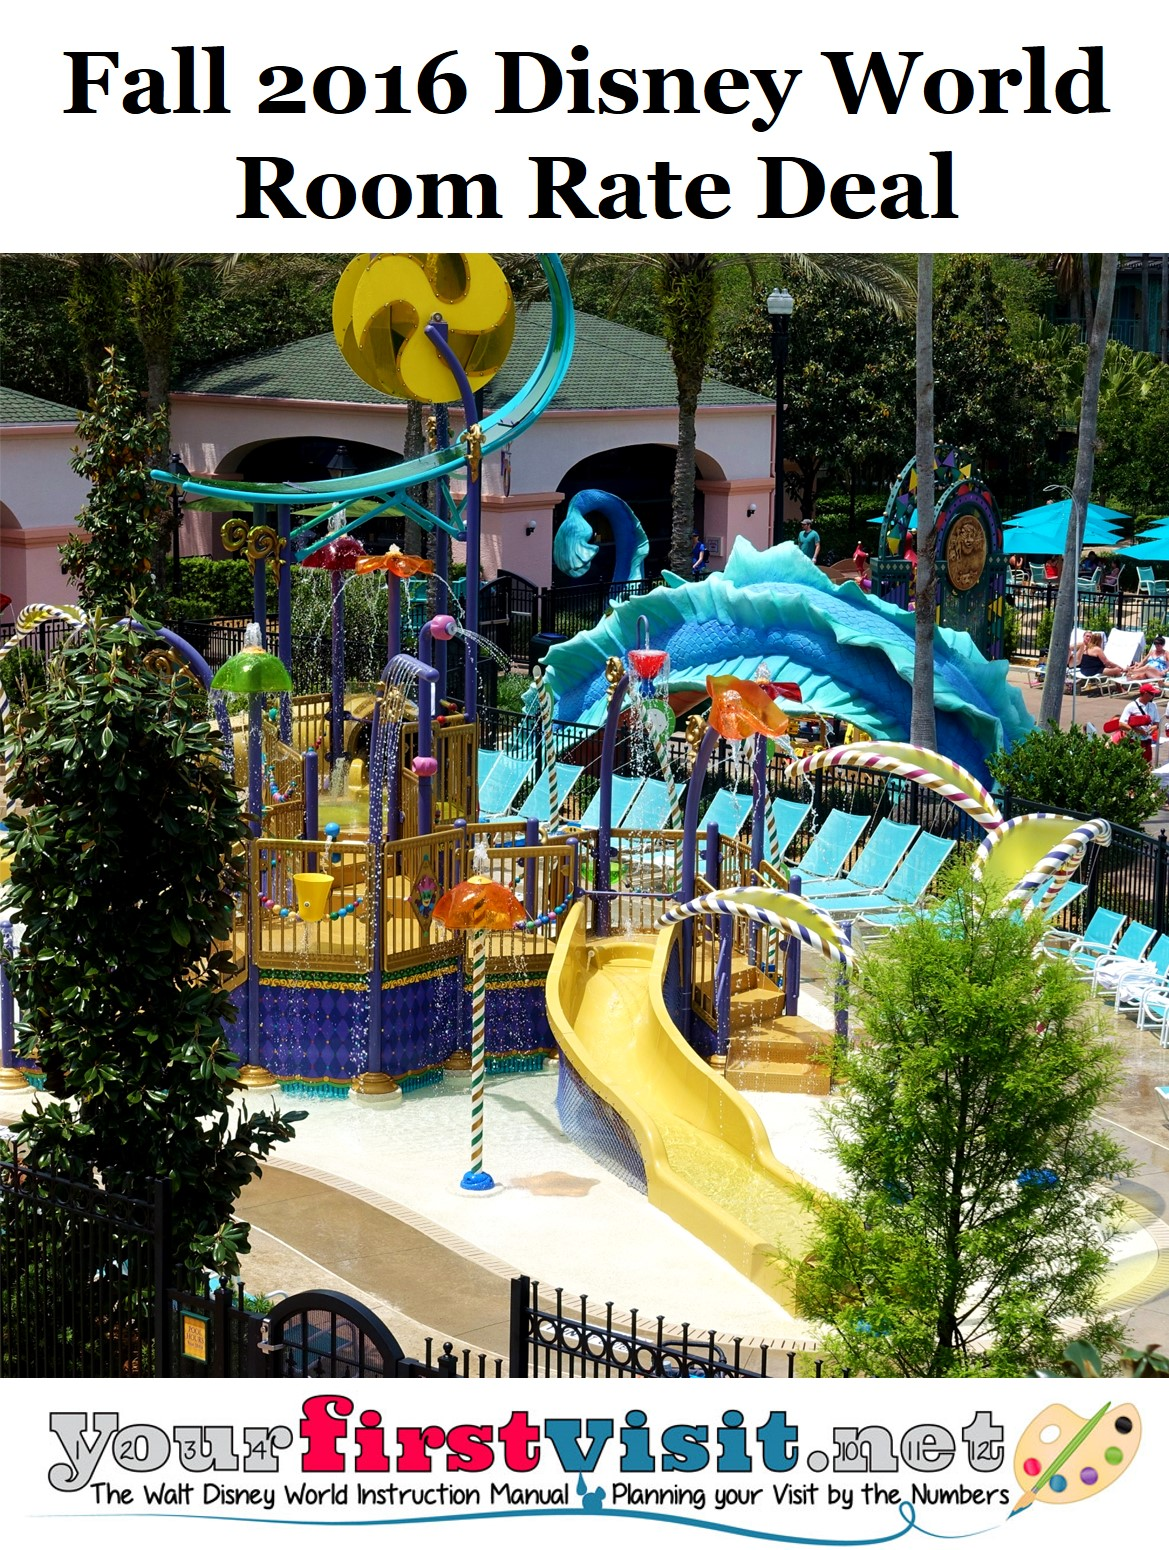 2016 Disney World Fall Room Rate Deal is Out